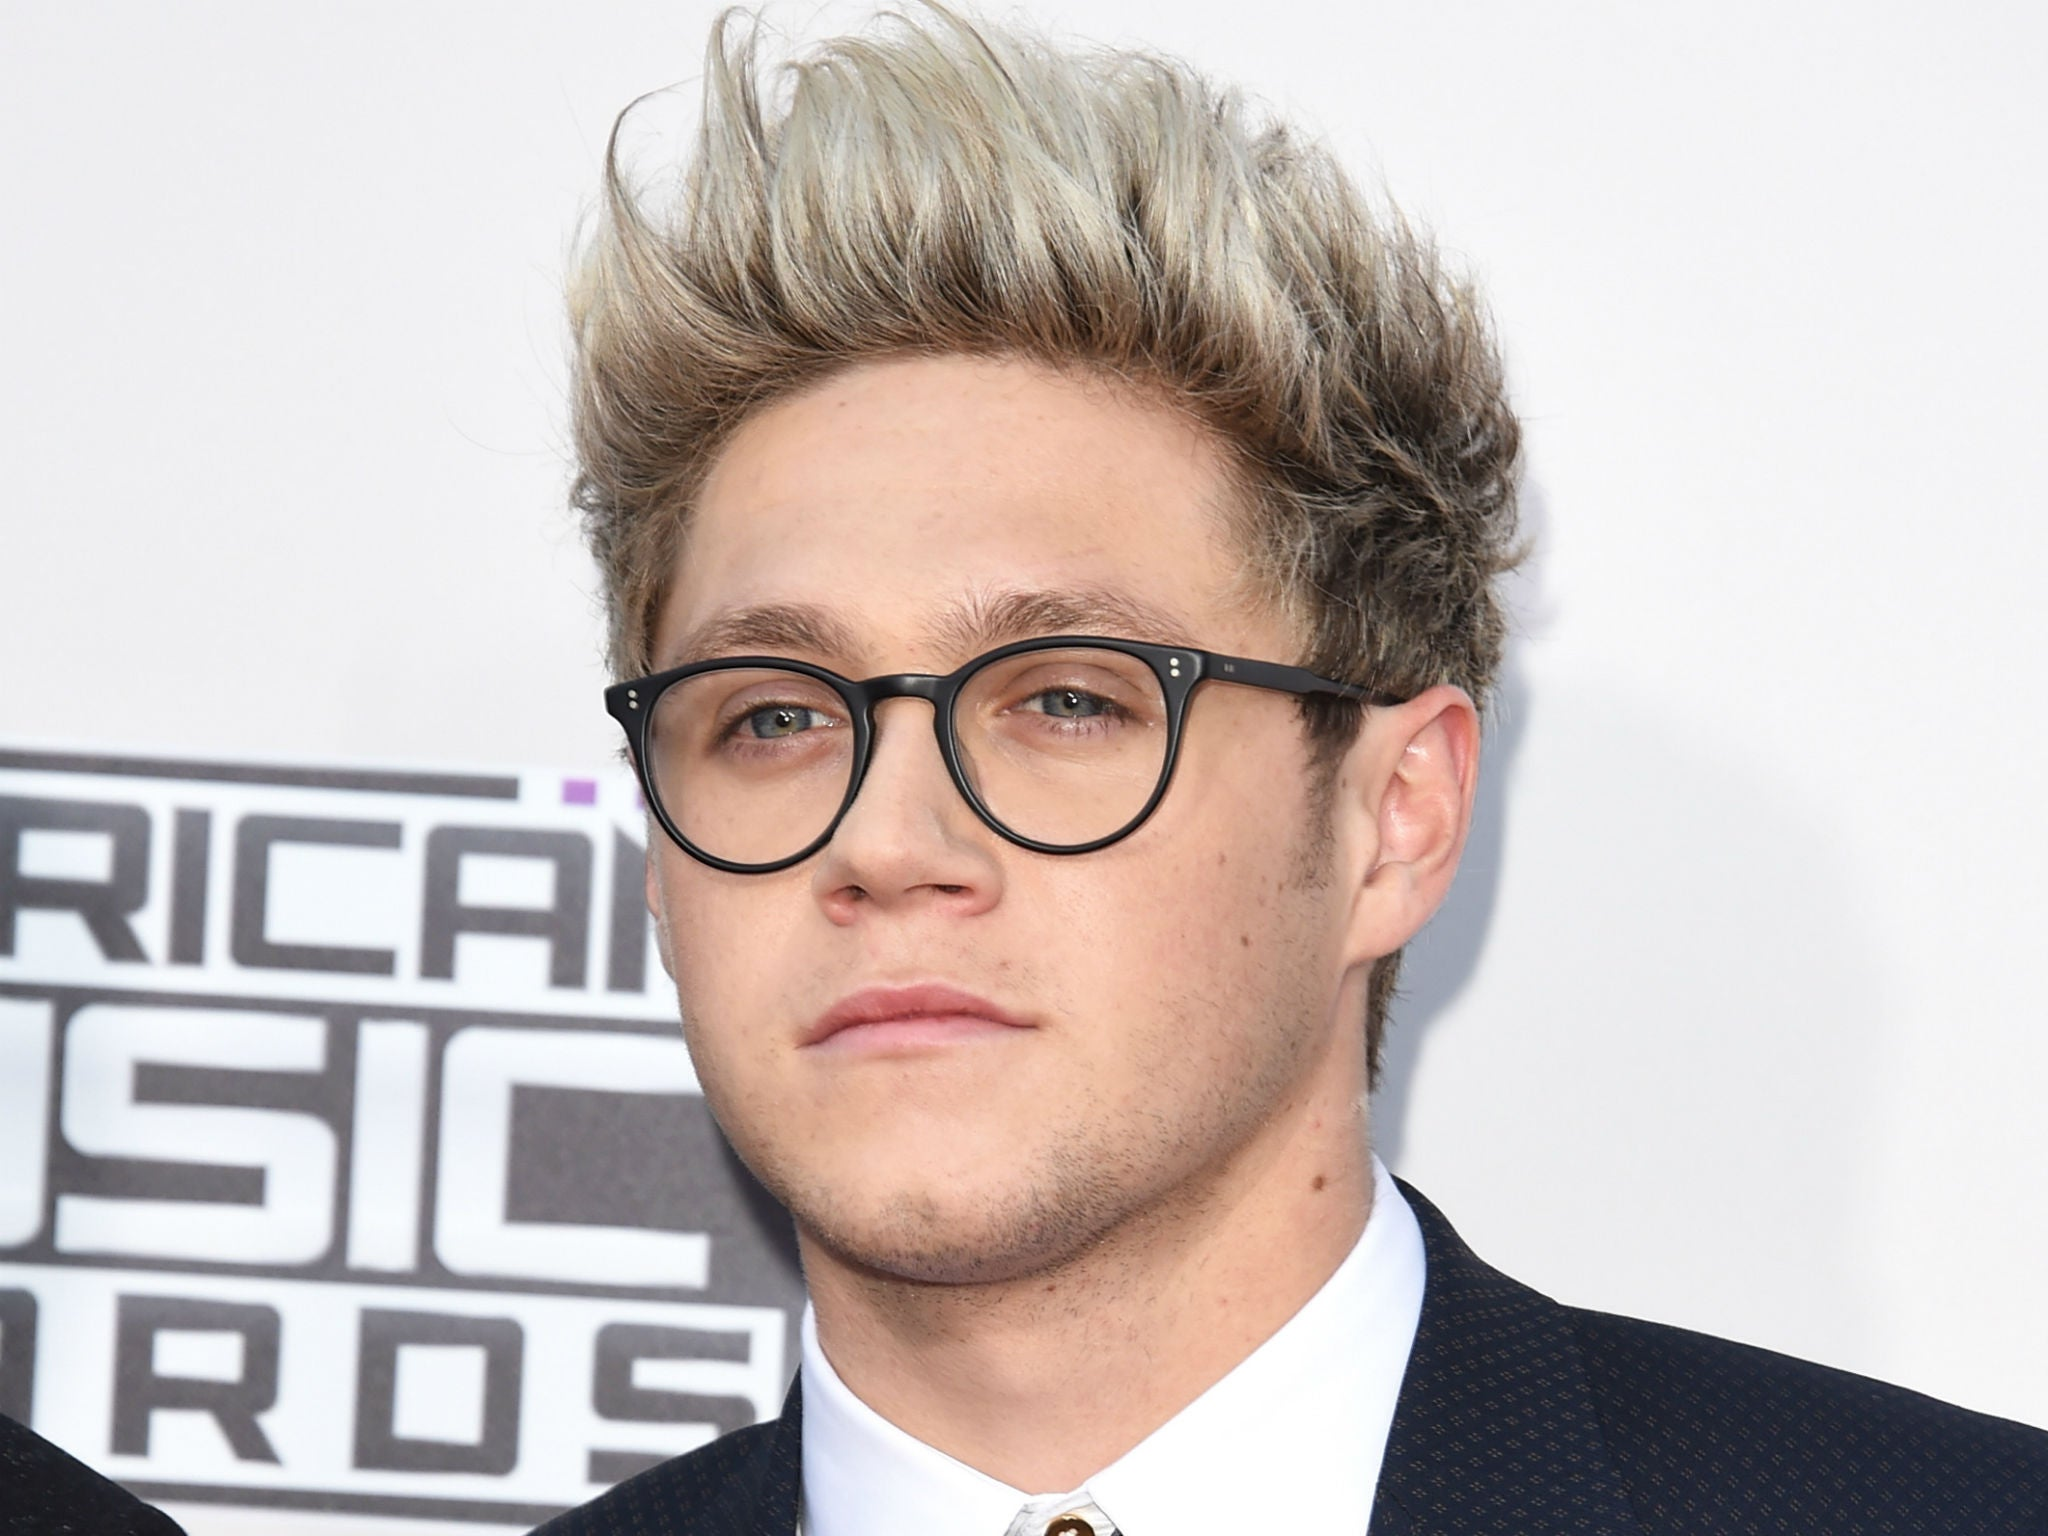 Niall Horan calls out 'animalistic white policemen' in anti-racism Twitter post